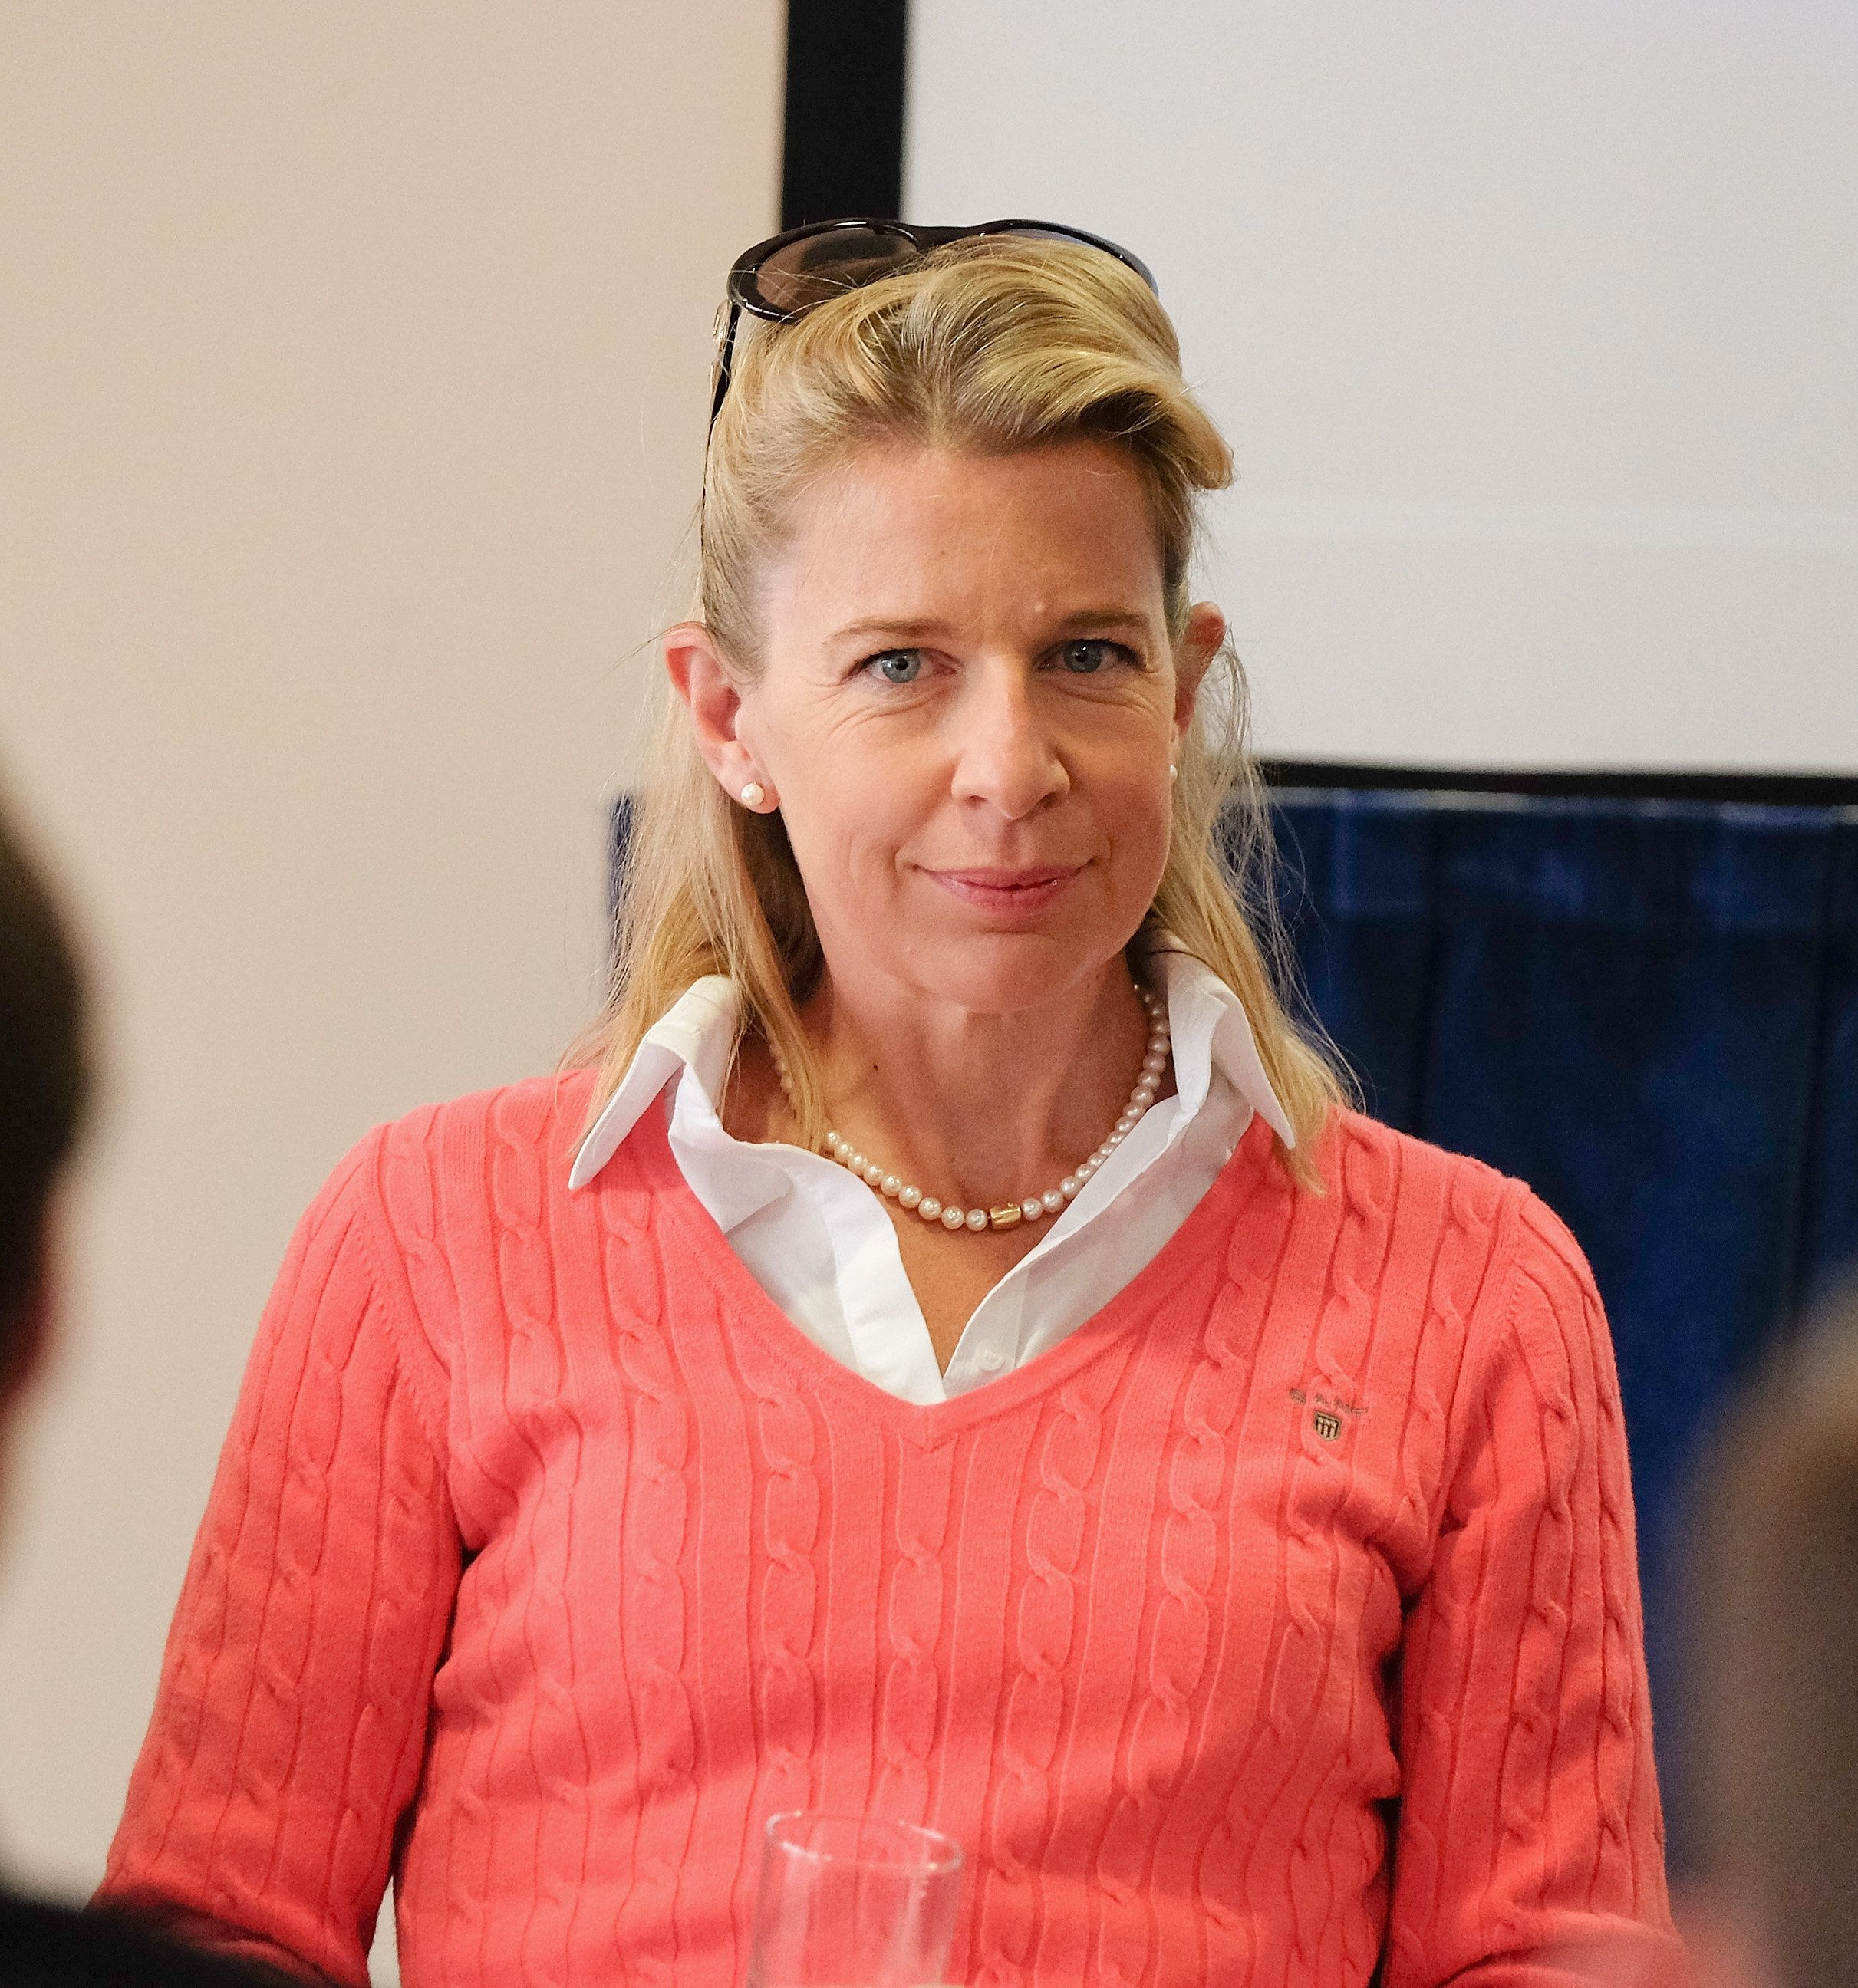 Thousands Raised 'For Katie Hopkins' Legal Fees' - But All Is Not What It Seems